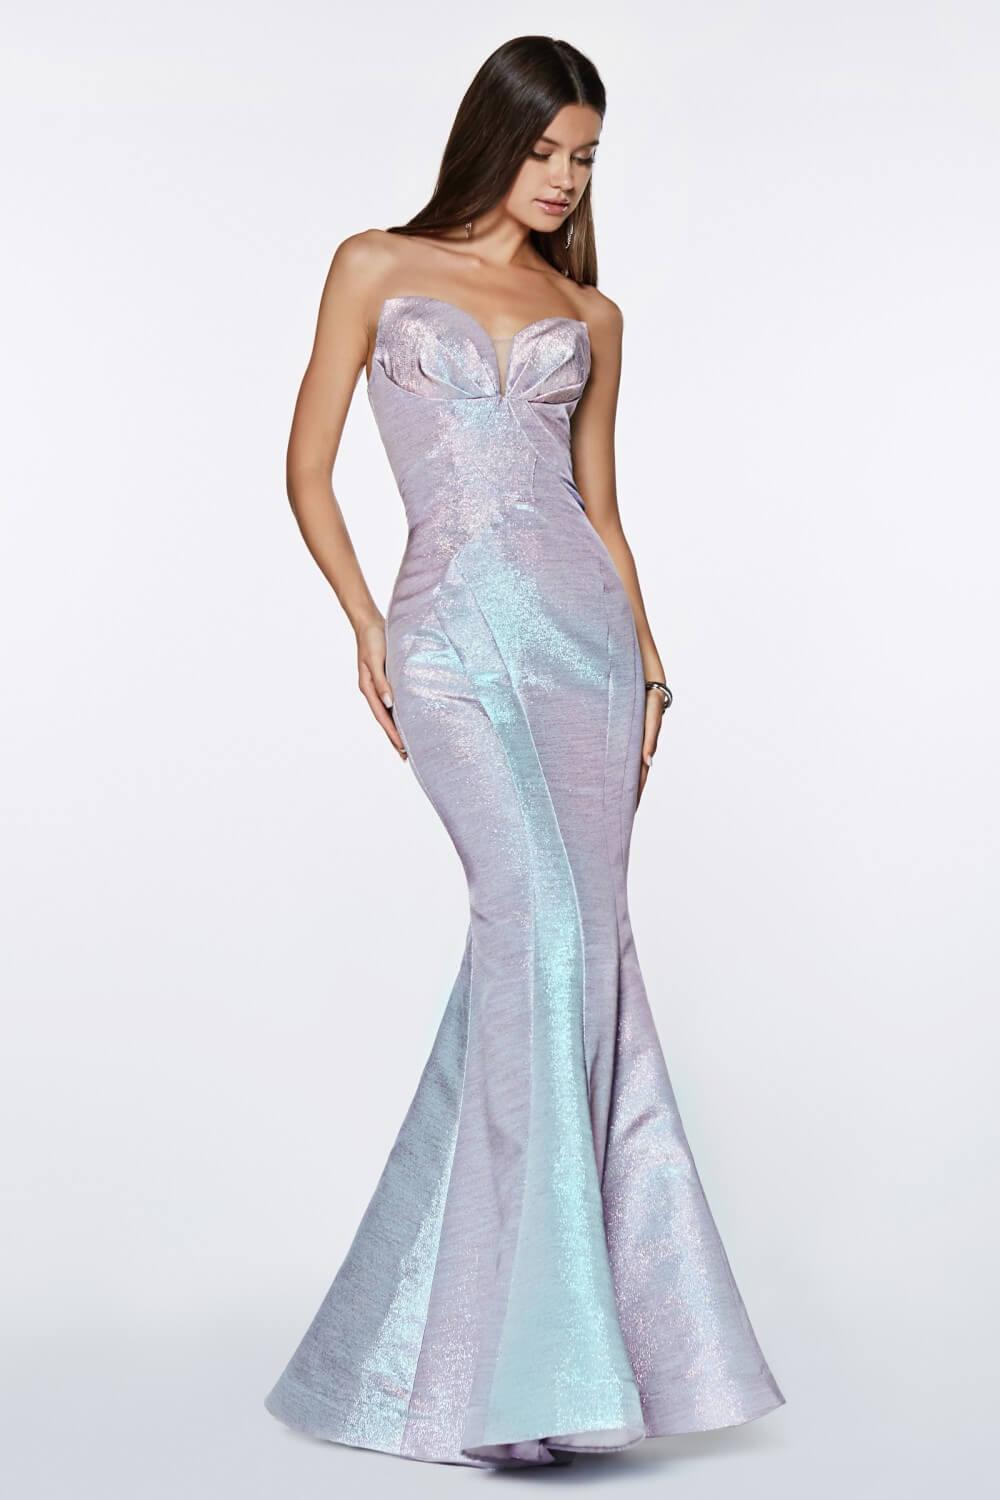 bdf510dfaaf Strapless Long Metallic Mermaid Gown Prom Dress - The Dress Outlet Blue Cinderella  Divine ...